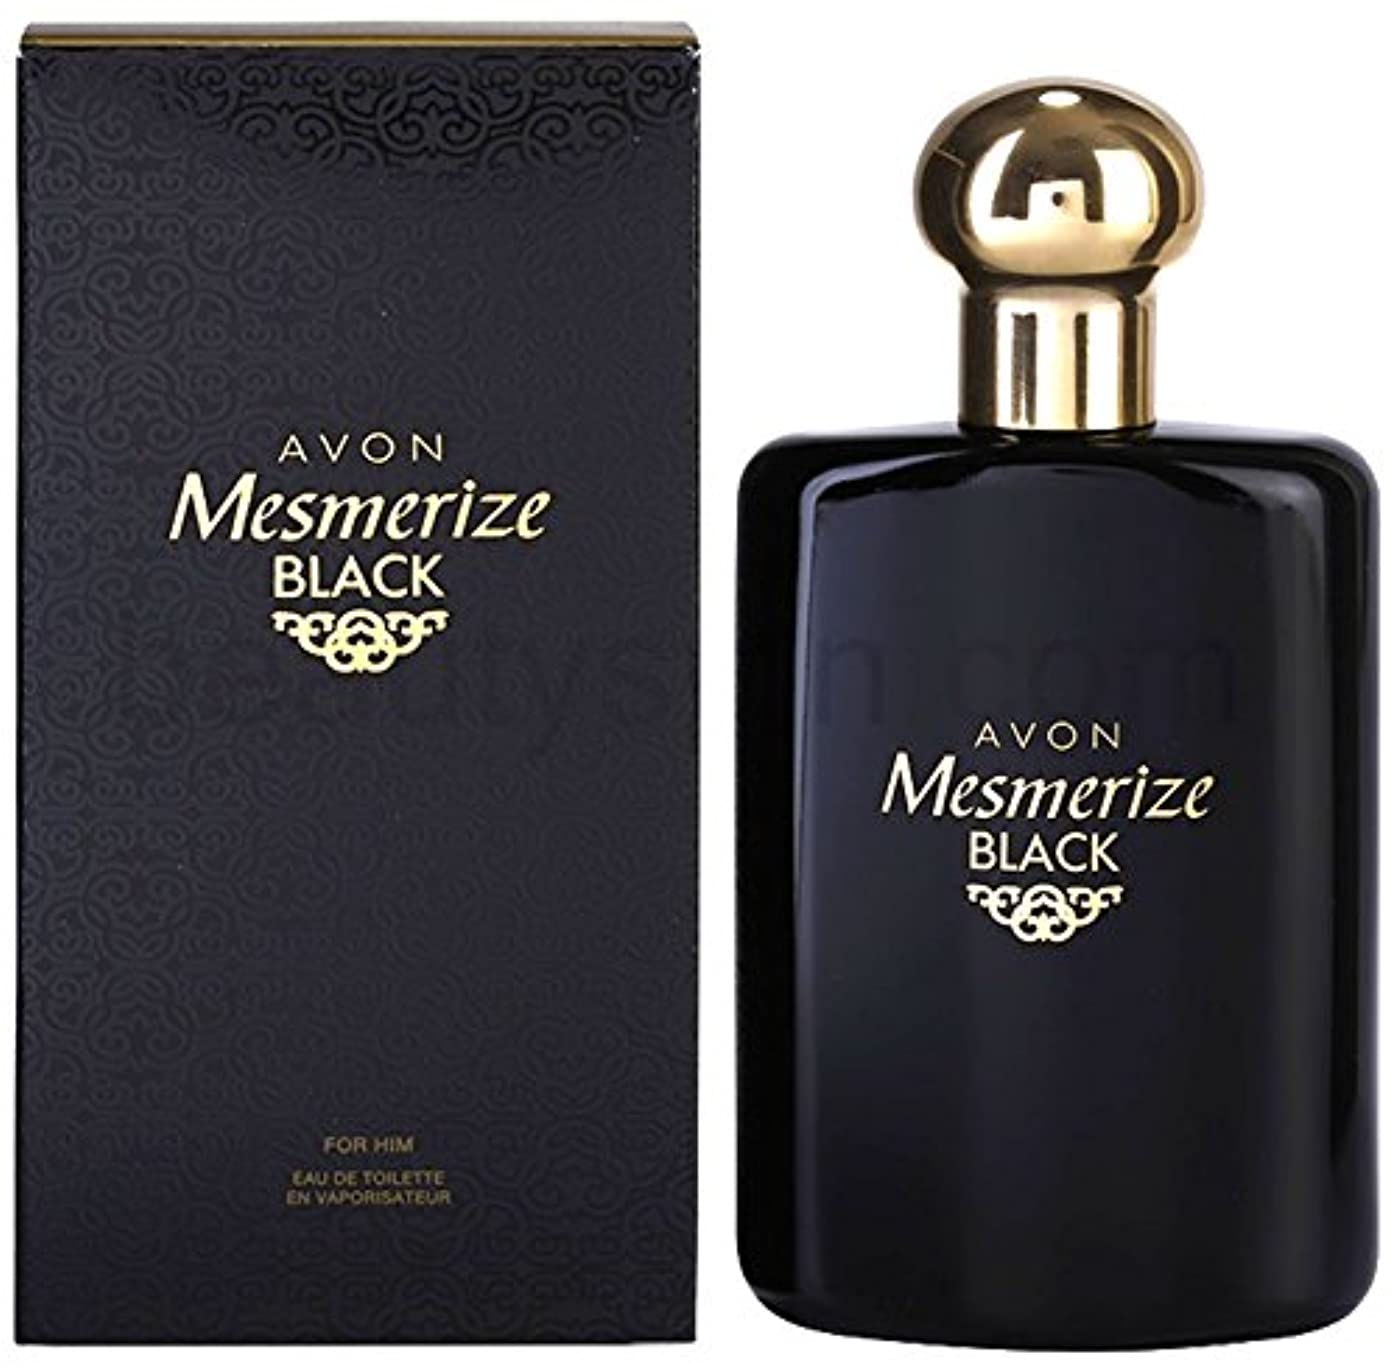 AVON Mesmerize Black For Him Eau de Toilette 100ml